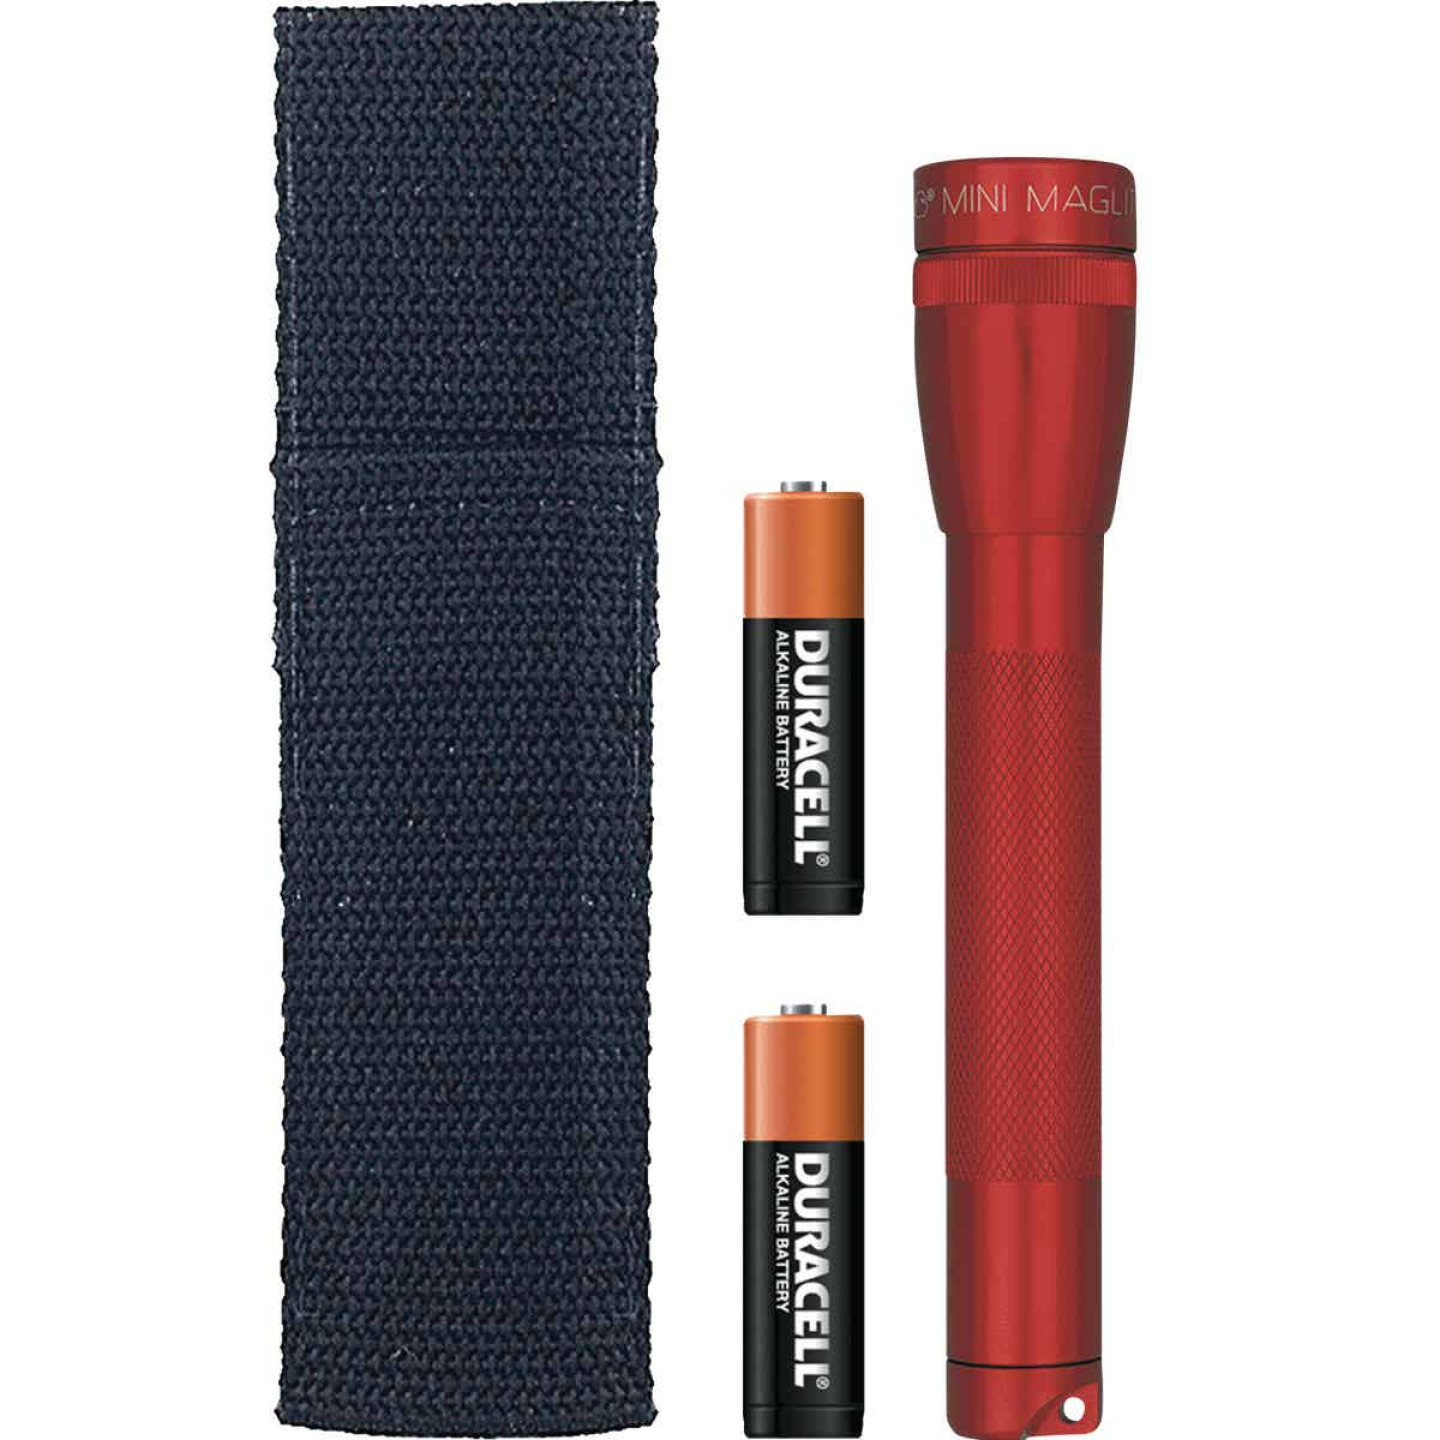 Maglite 14 Lm. Xenon 2AA Flashlight, Red Image 1